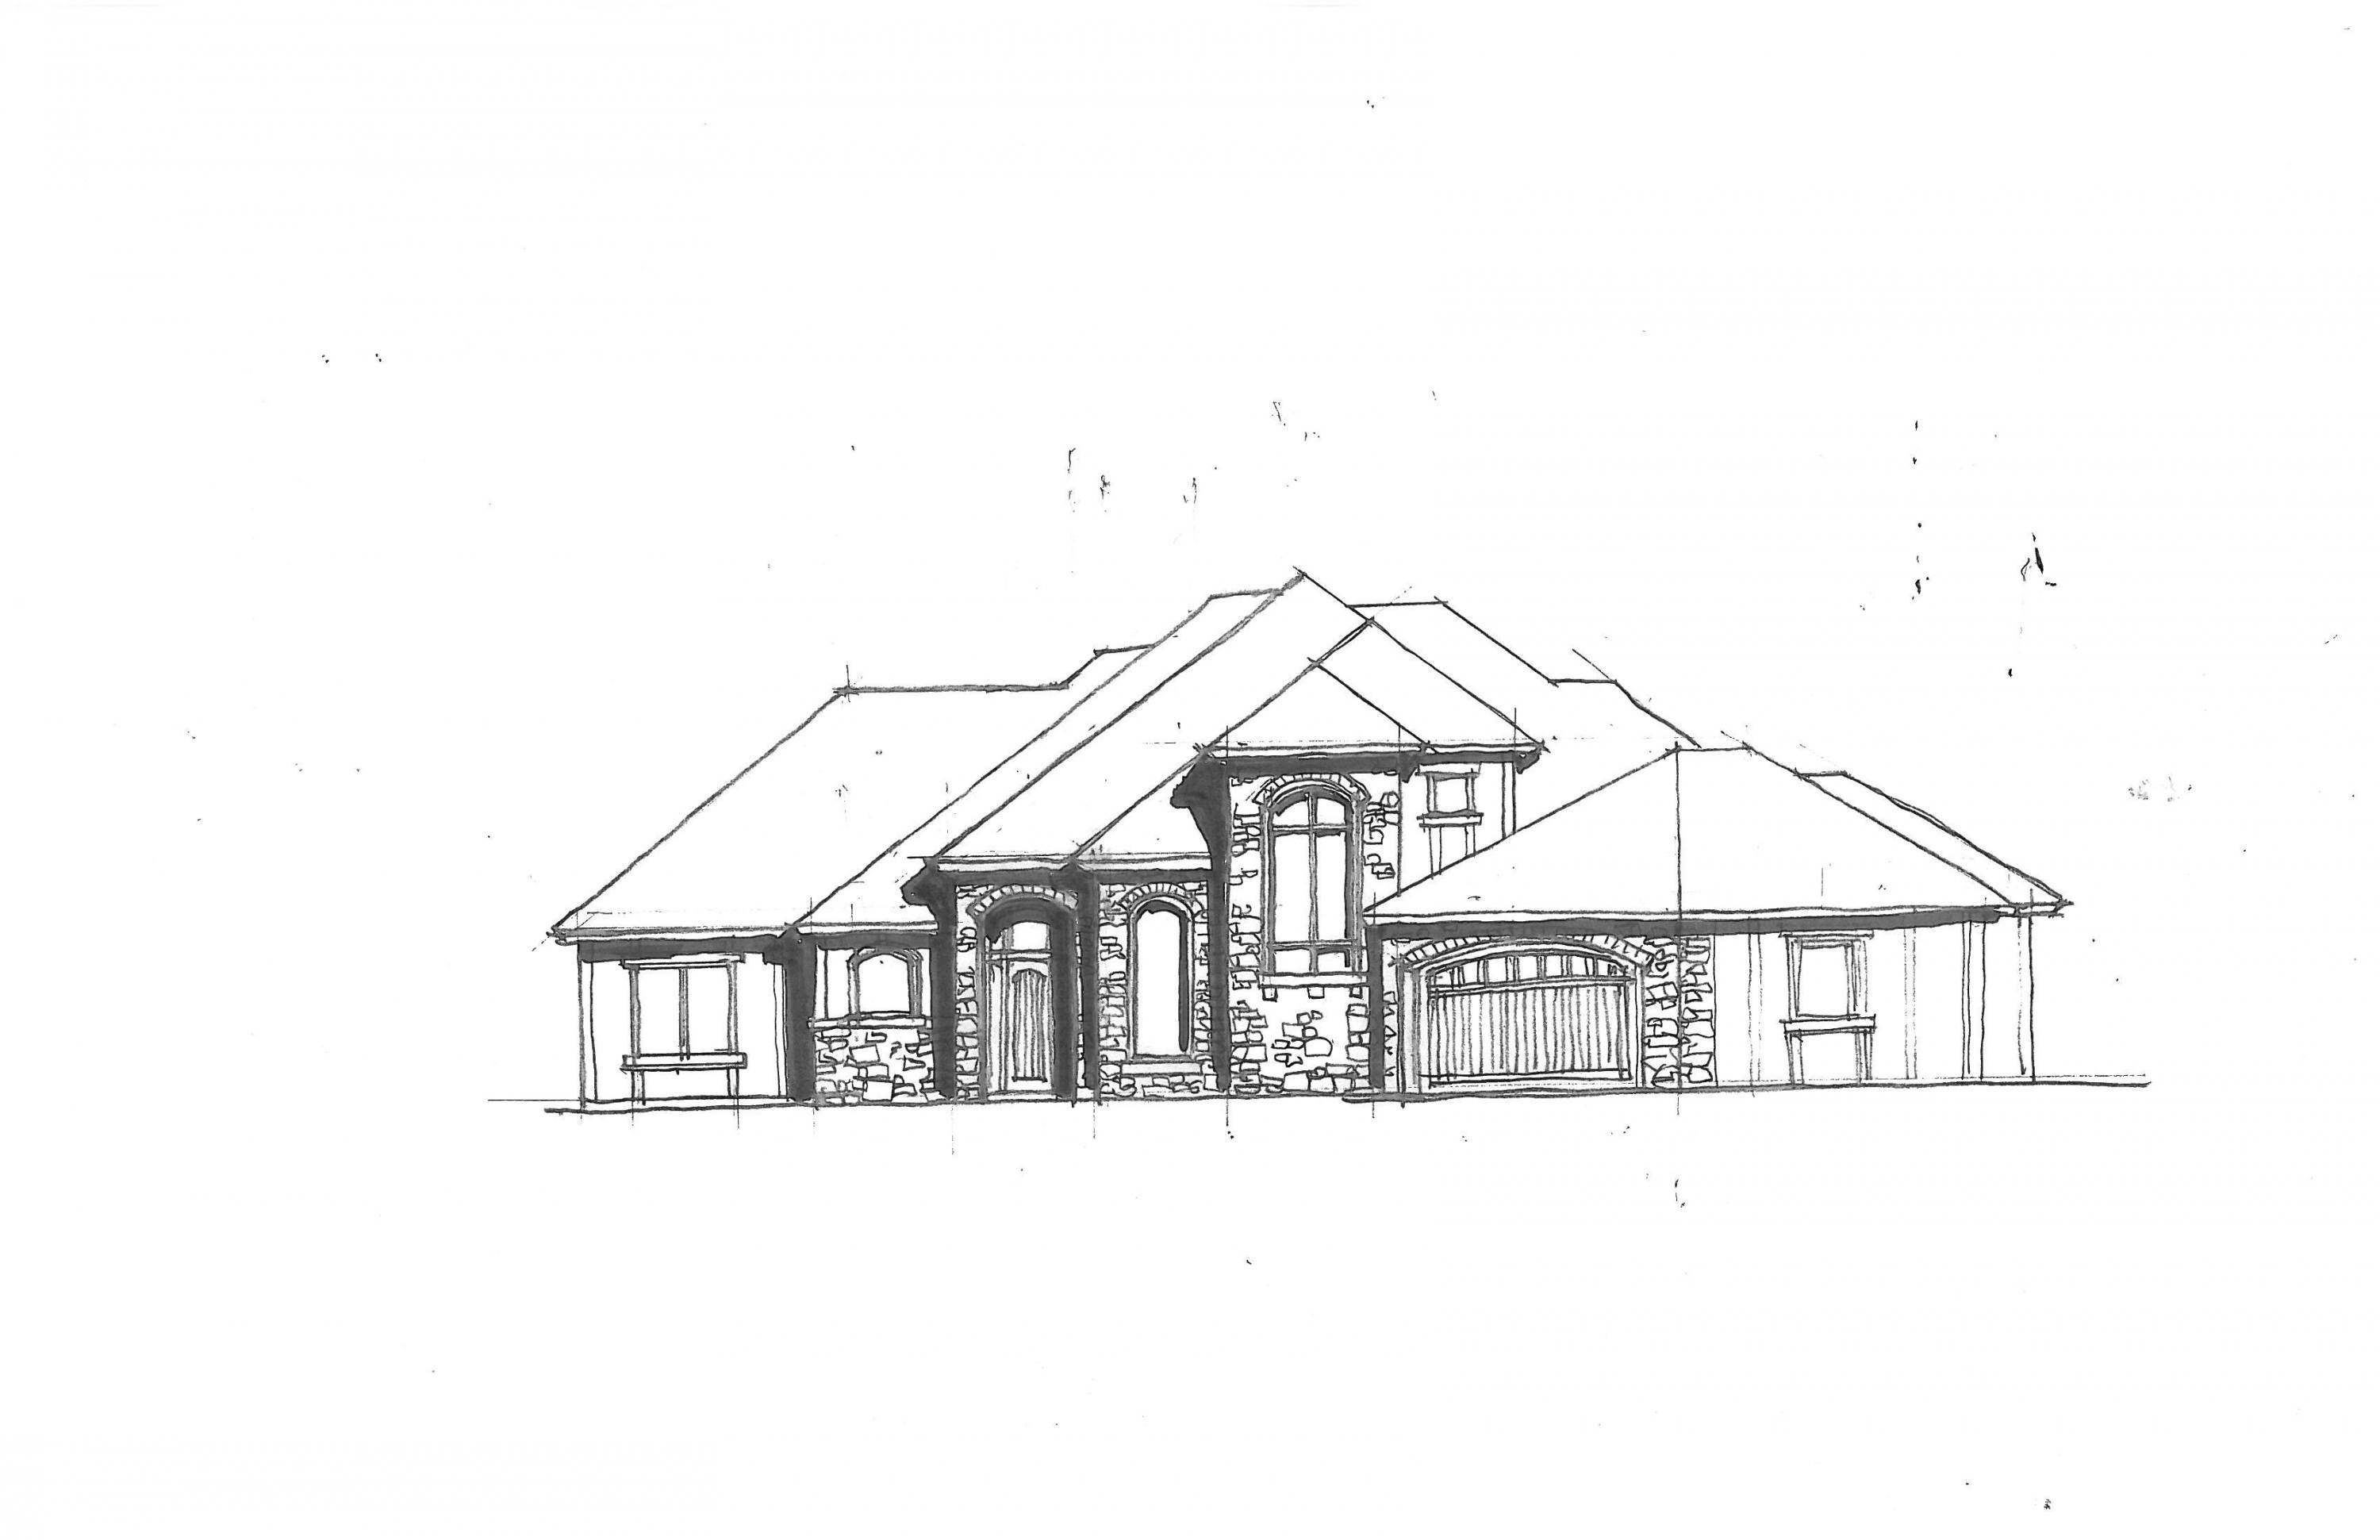 captivating house floor plans line ideas best house plans online Final Review. We offer you another review session after your floor plans ...